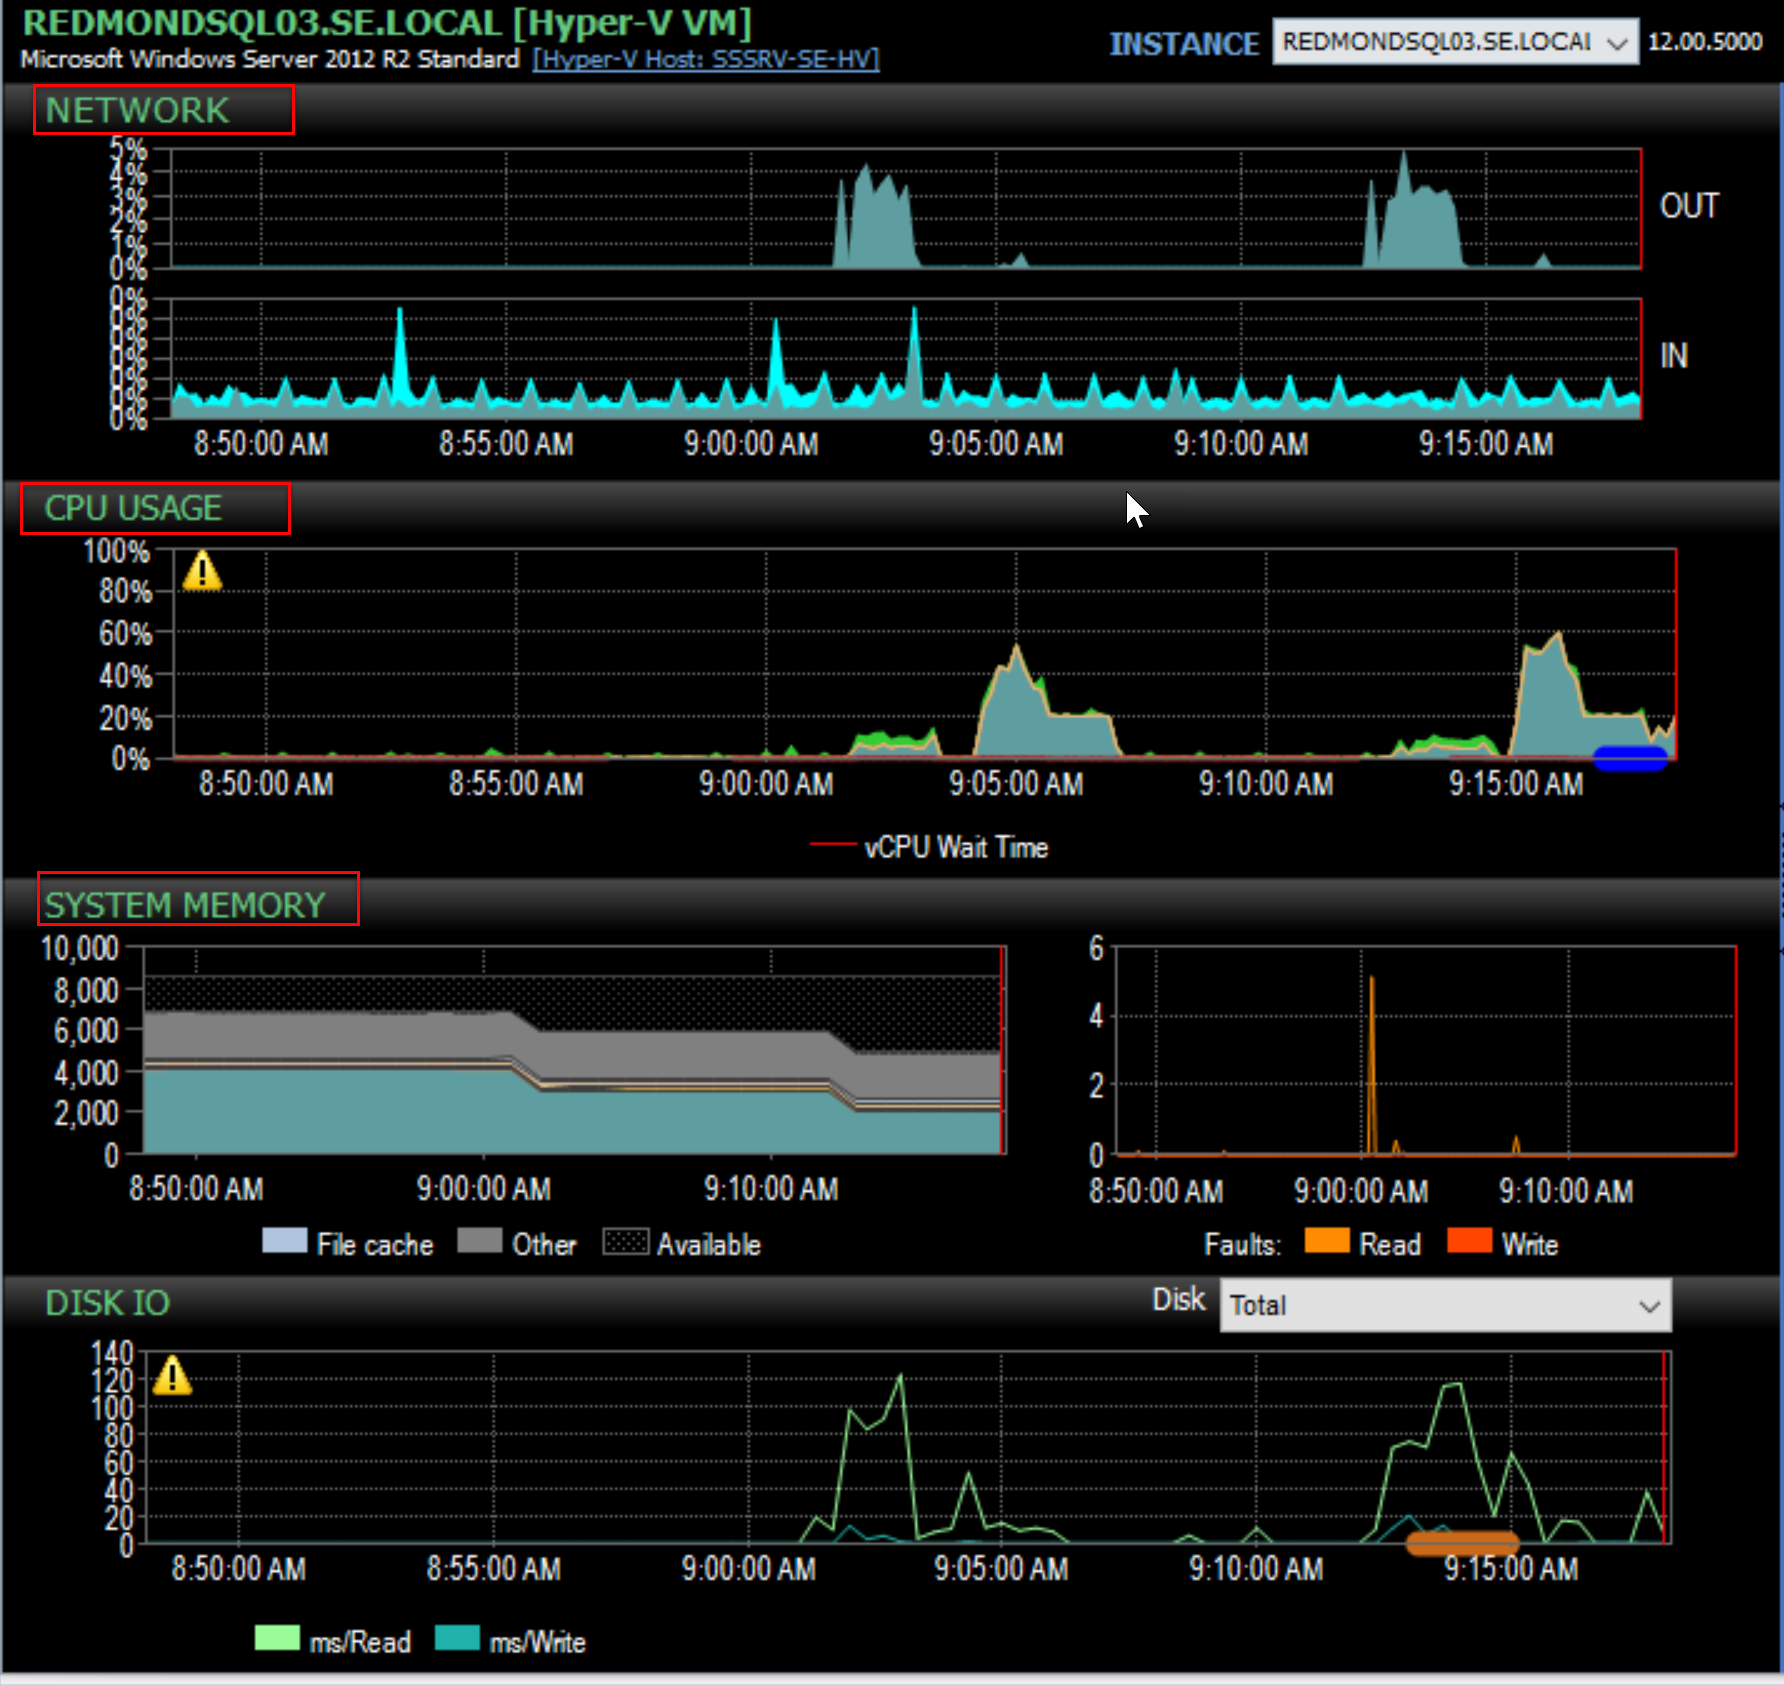 SentryOne Performance Analysis Dashboard Network, CPU Usage, System Memory, Disk IO graphs